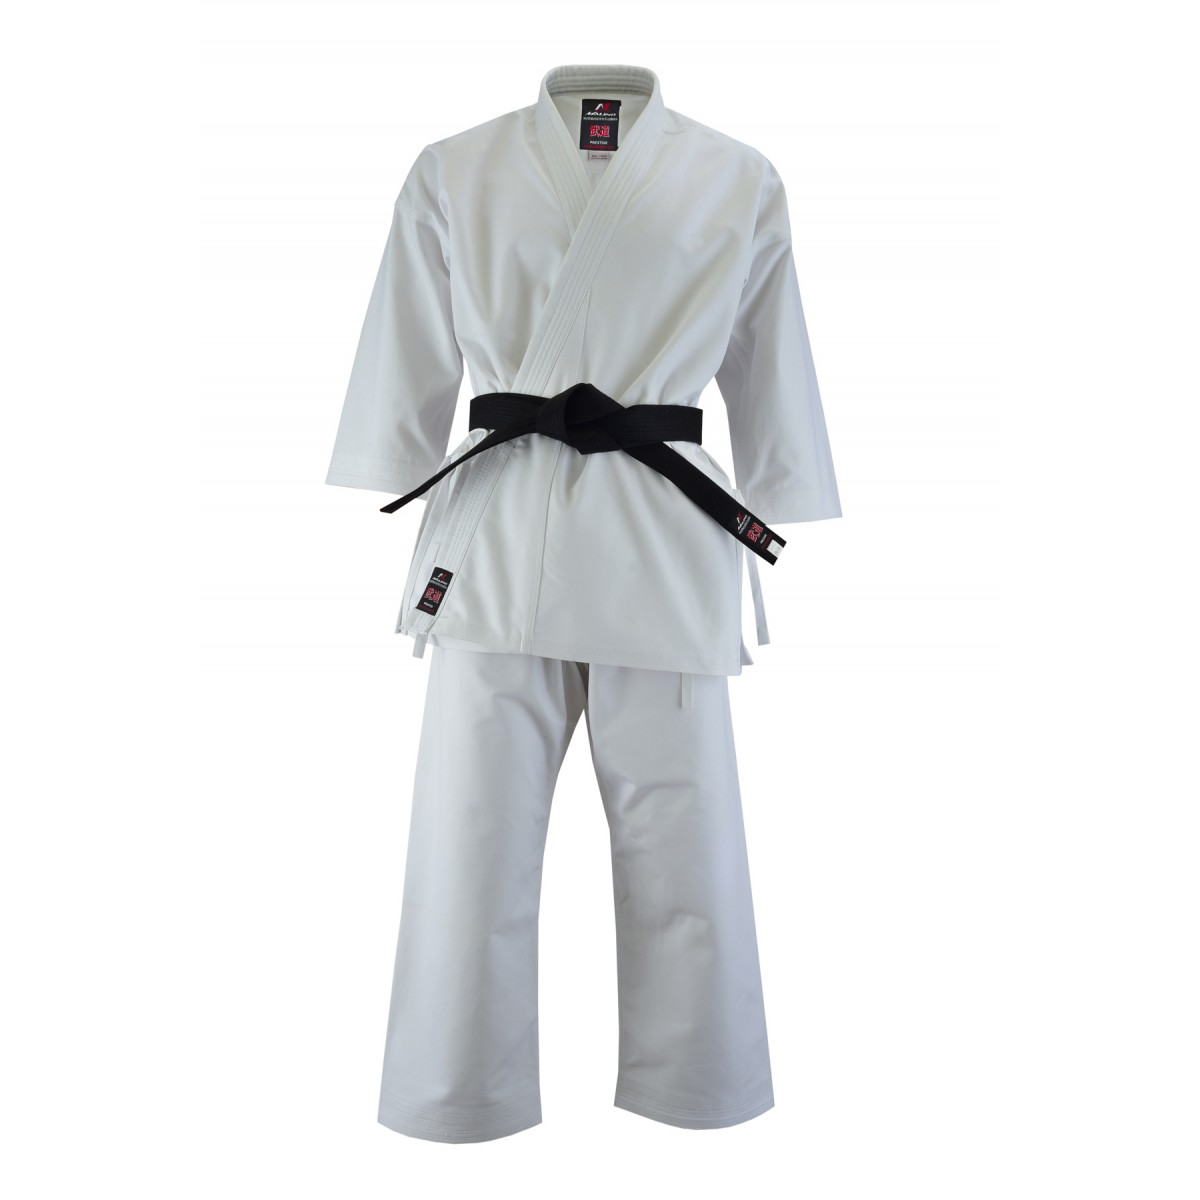 Malino Professional Kids Karate Suit White One side peach - 14oz